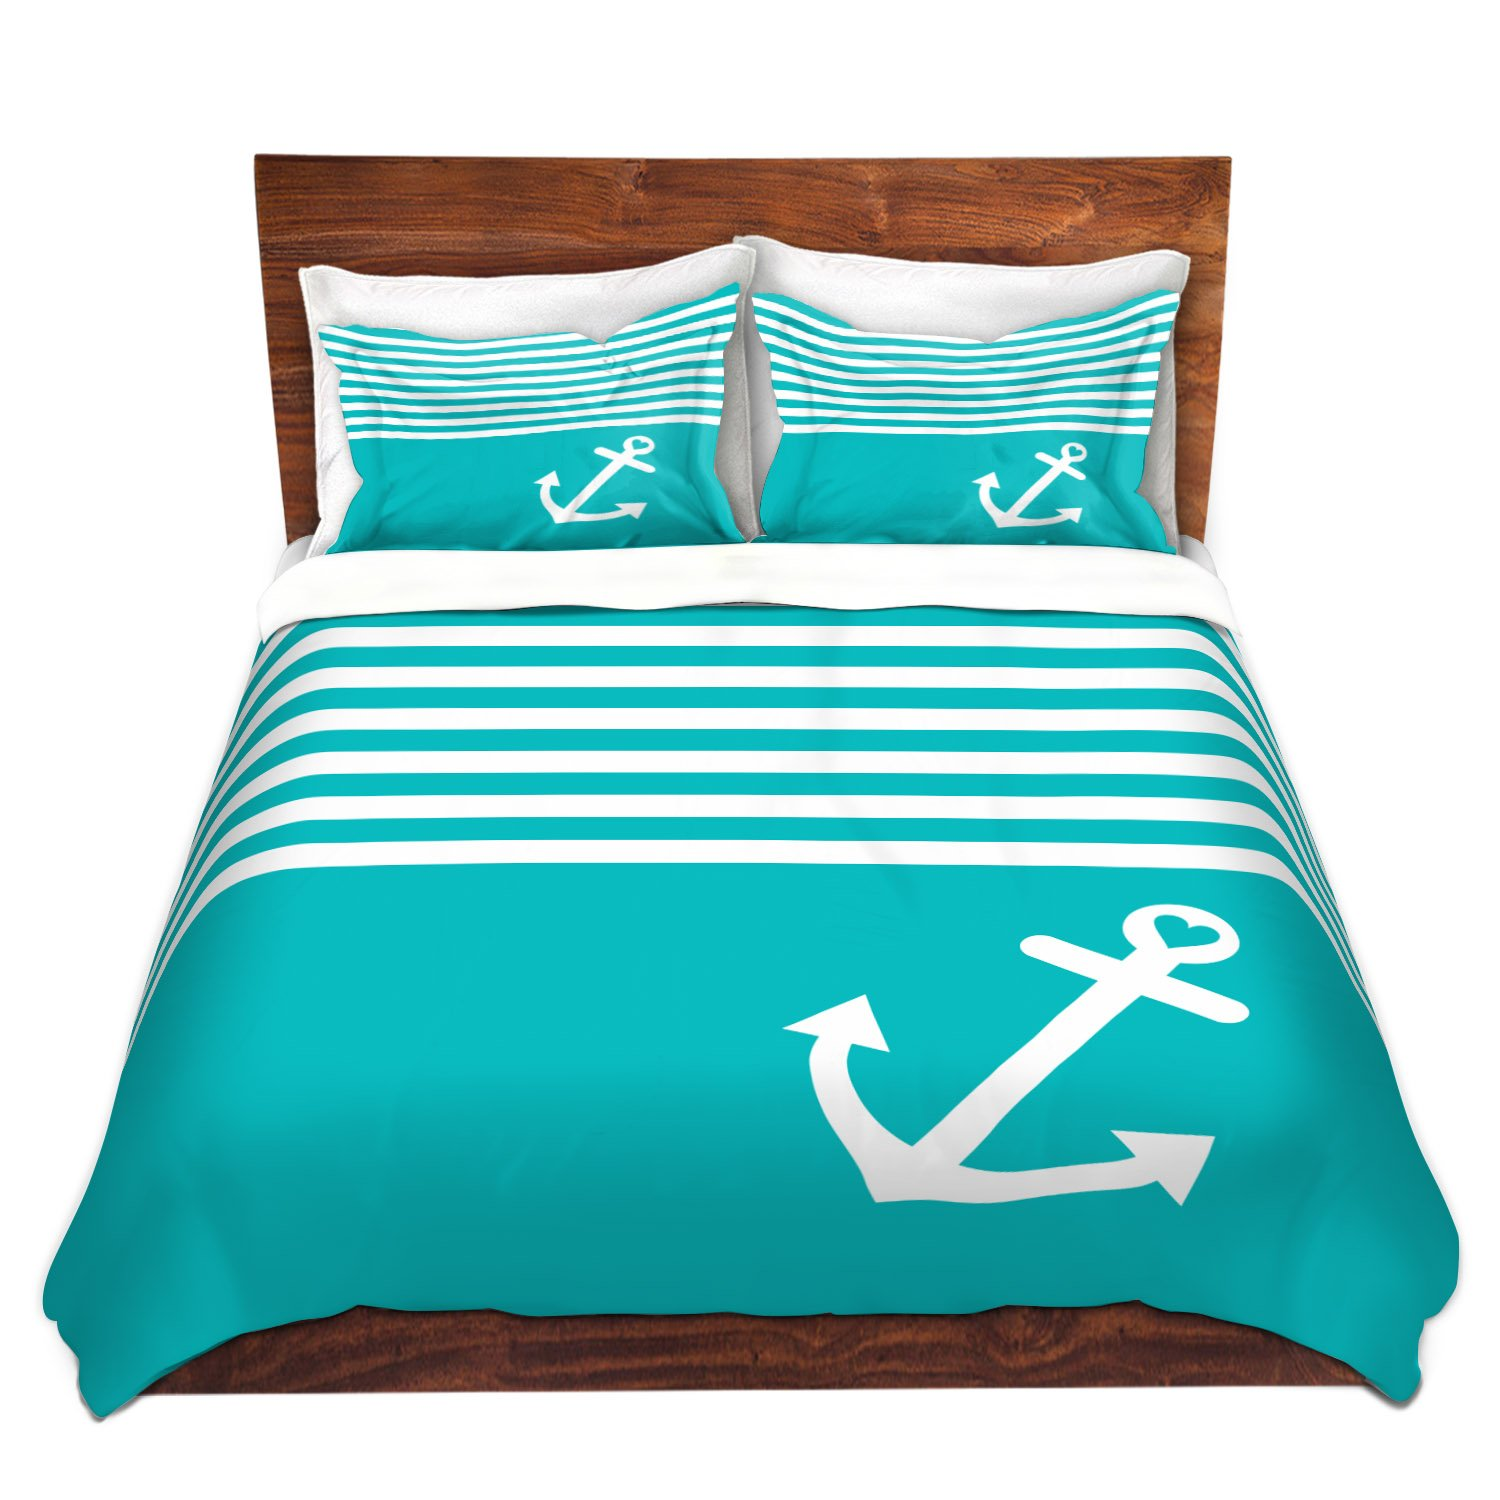 DiaNoche Designs Microfiber Duvet Covers Organic Saturation Teal Love Anchor Nautical